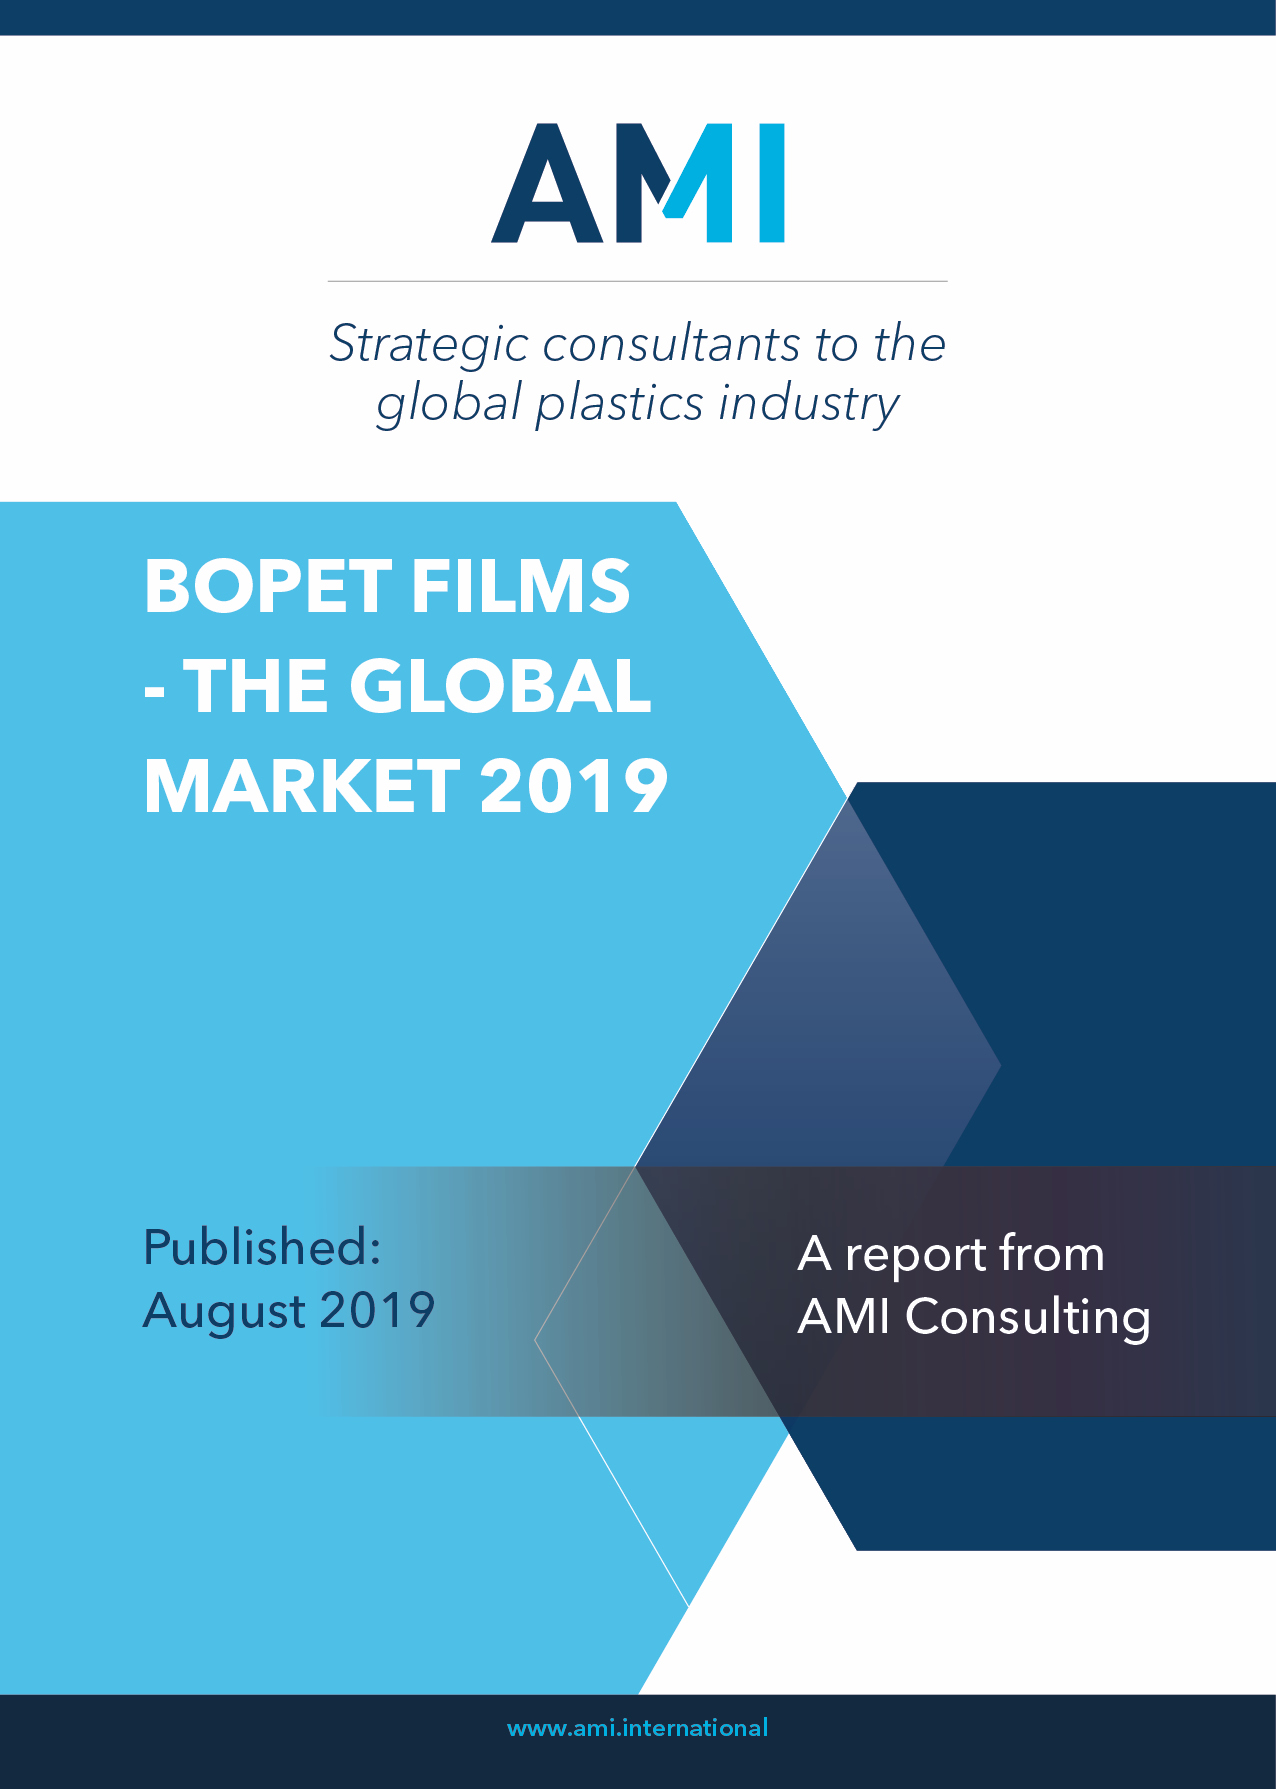 BOPET films - the global market